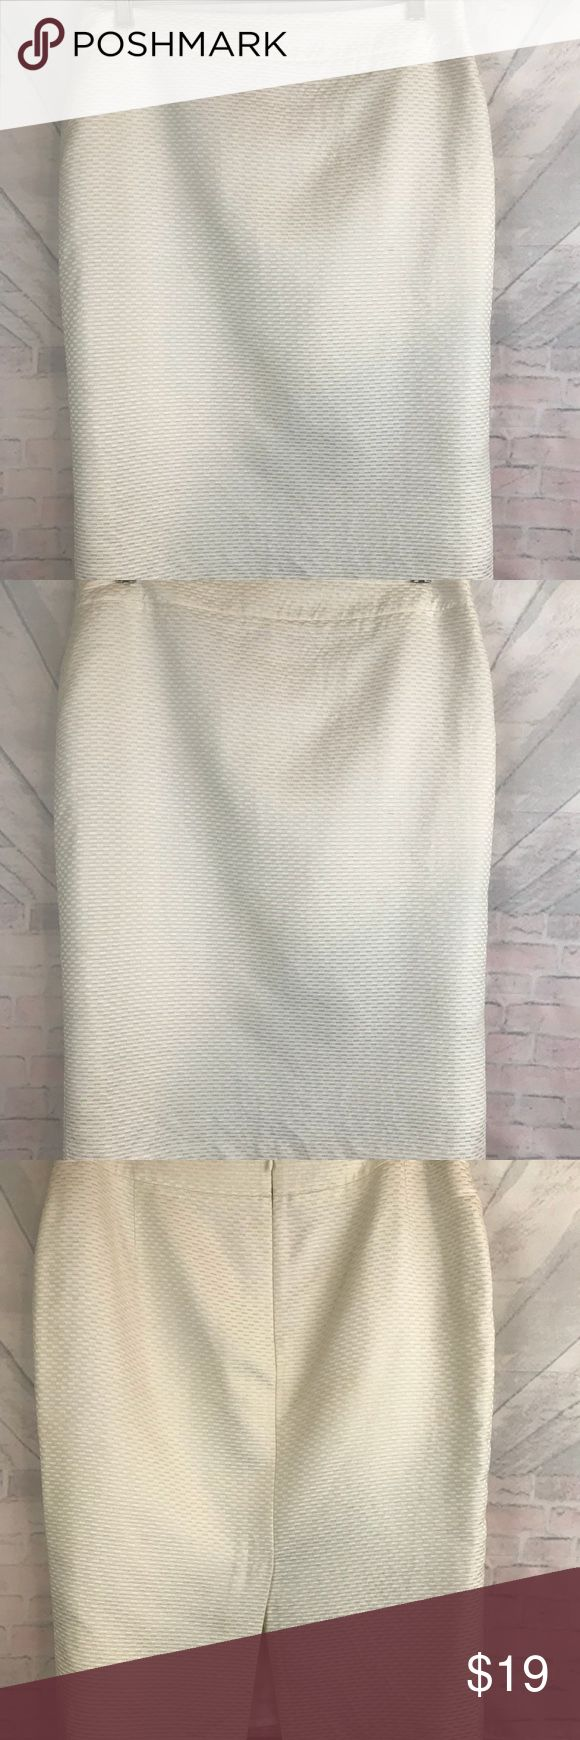 "Armani Collezioni Womens Size Medium Skirt. Barely Worn. Armani Collezioni Womens Size Medium Skirt. Lined.  Cream pattern.  Zipper in back with inside button. Made of 77% Cotton and 23% Silk.  Lining made 100% Acetate.   Waist approximately 30 1/2 inches without stretching and length approximately 24 1/4 inches. 8"" slit along the back. Armani Collezioni Skirts"